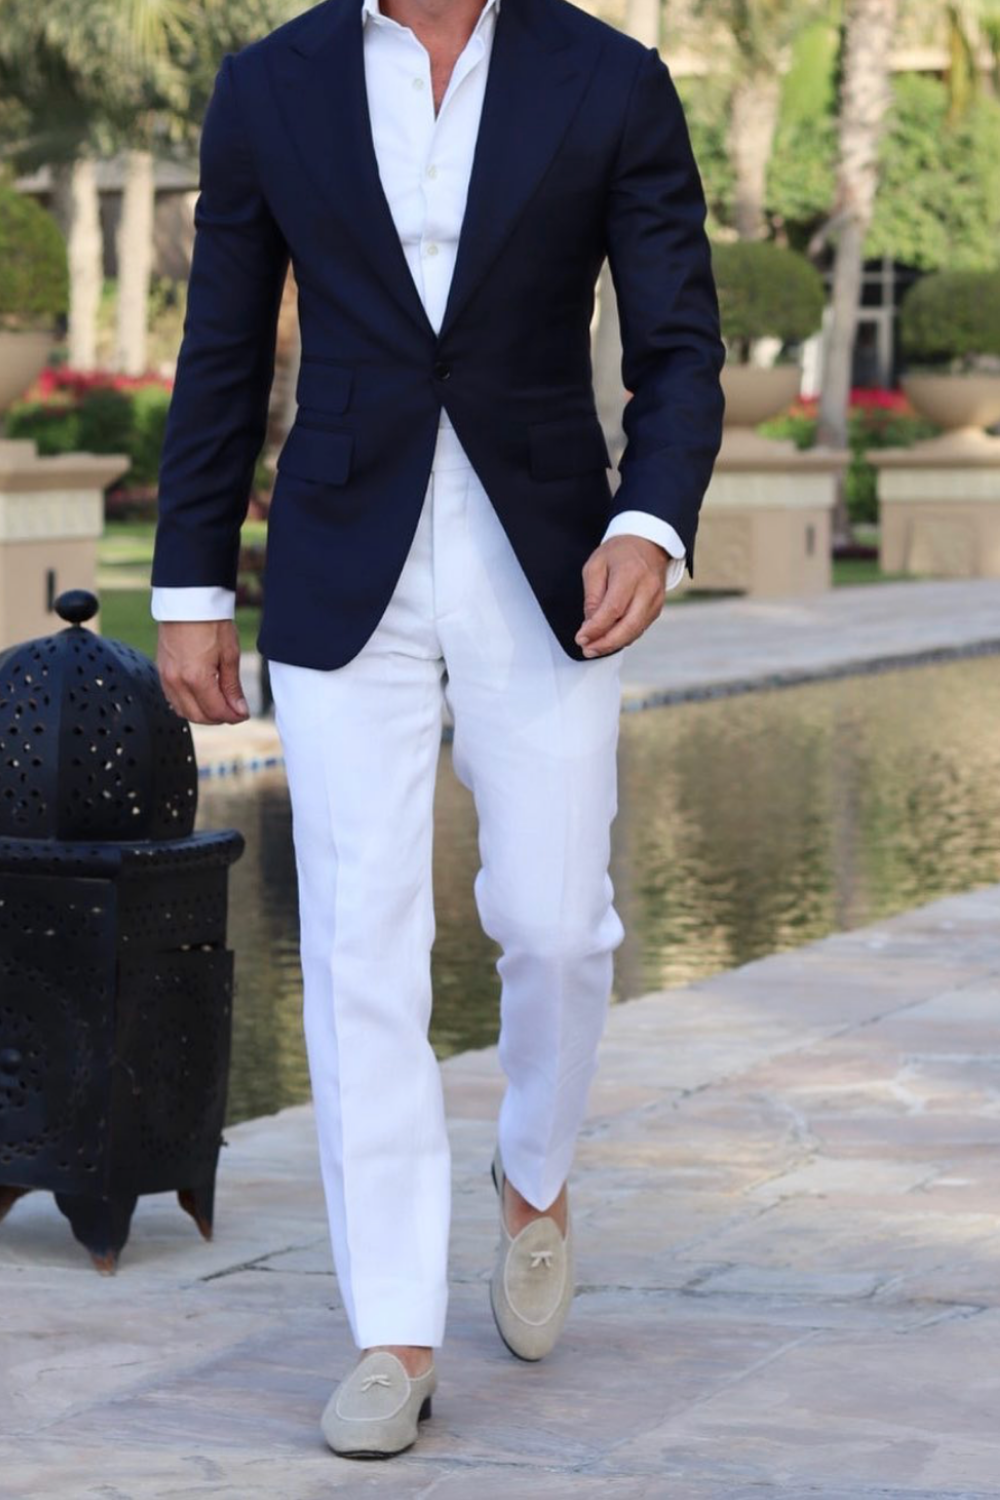 Men S Black On White Suit Outfit Gentleman Style Giorgenti Custom Suits Brooklyn Nyc In 2021 Dapper Gentleman Style Men S Spring Outfit Gentleman Style [ 1500 x 1000 Pixel ]